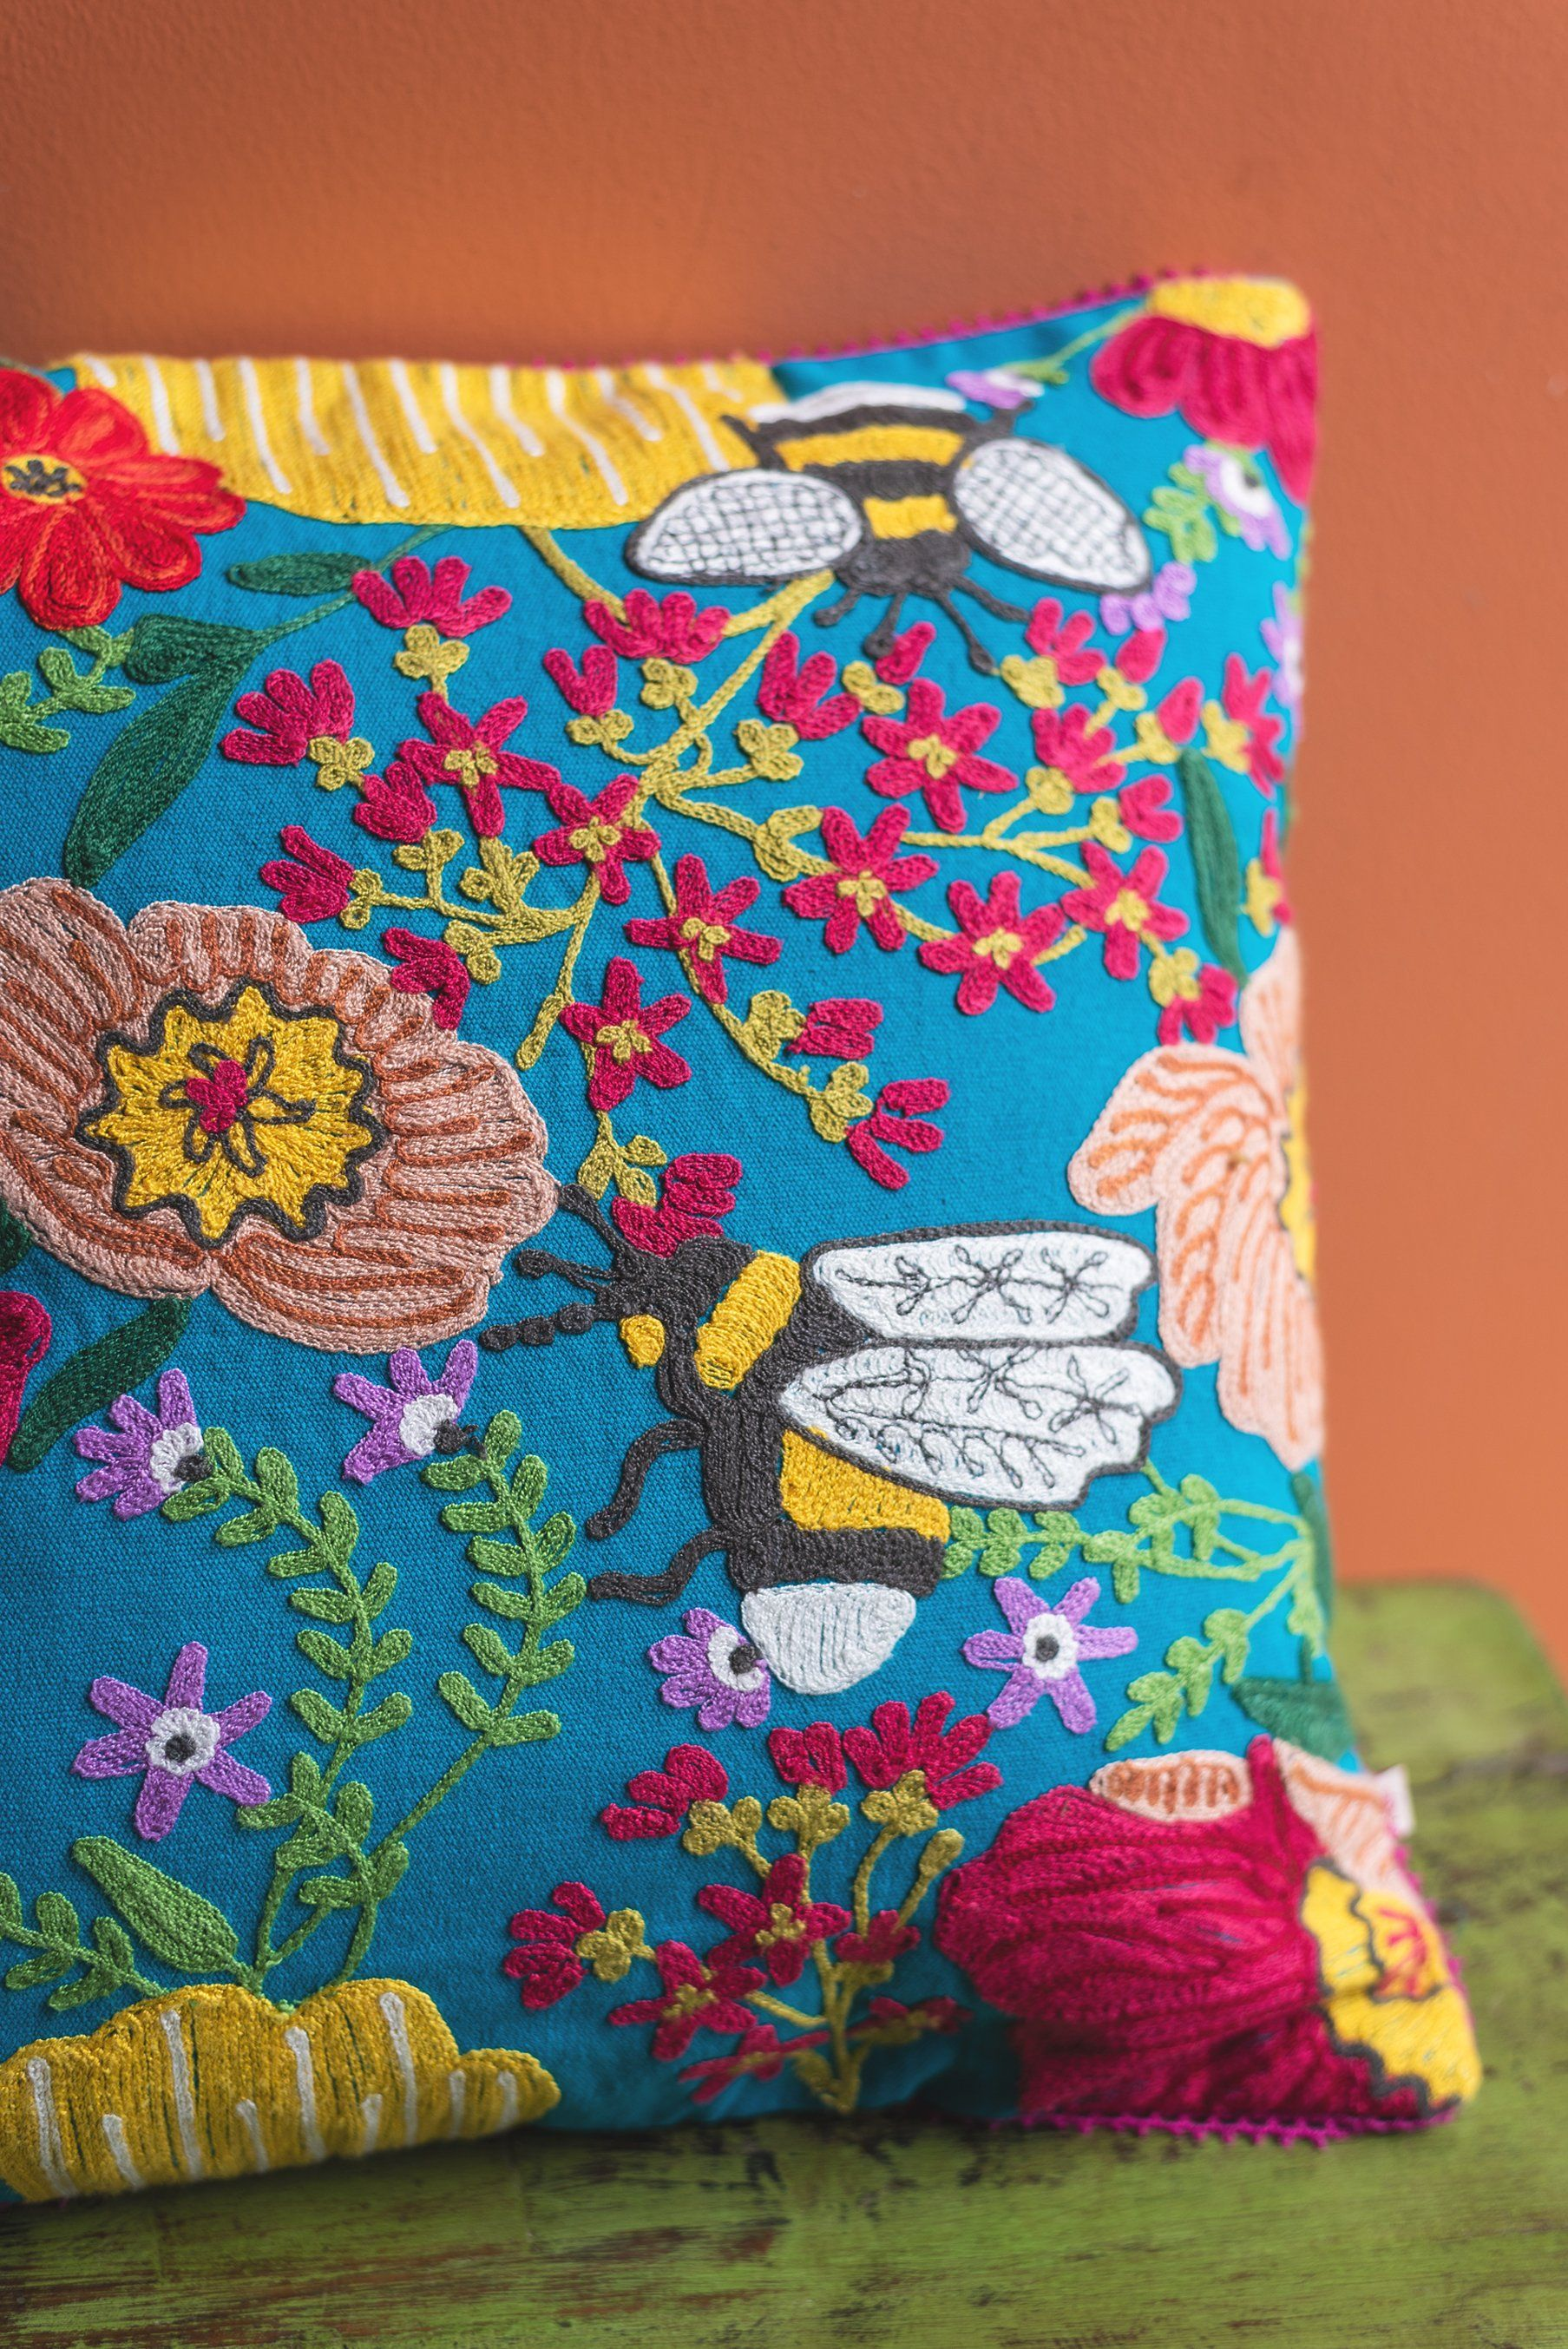 Embroidered Flowers & Bees Cotton Cushion Cover